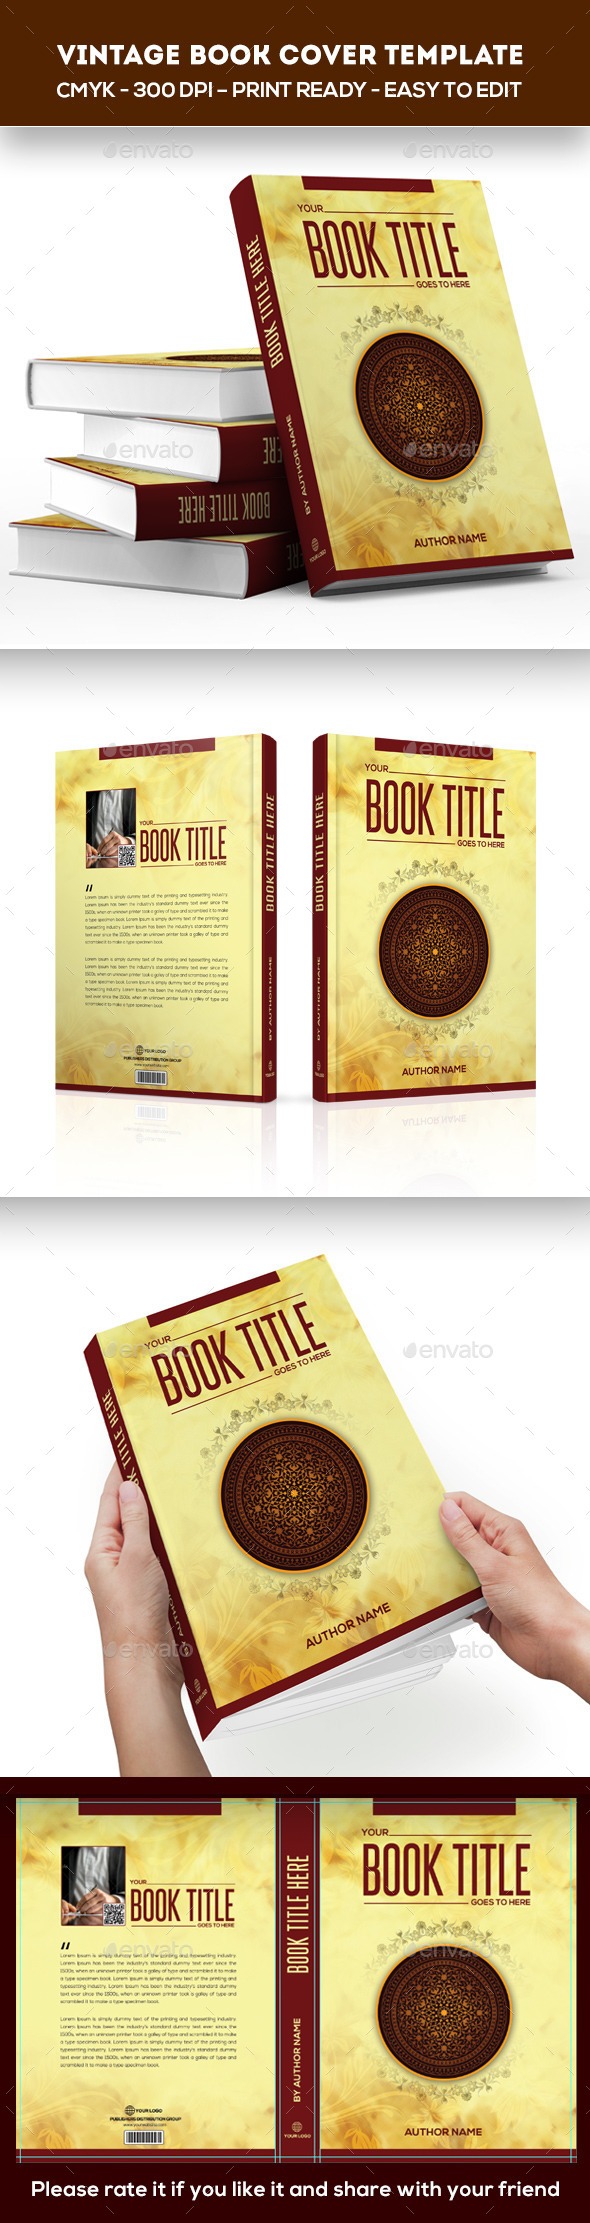 Vintage Book Cover Template - Print Templates